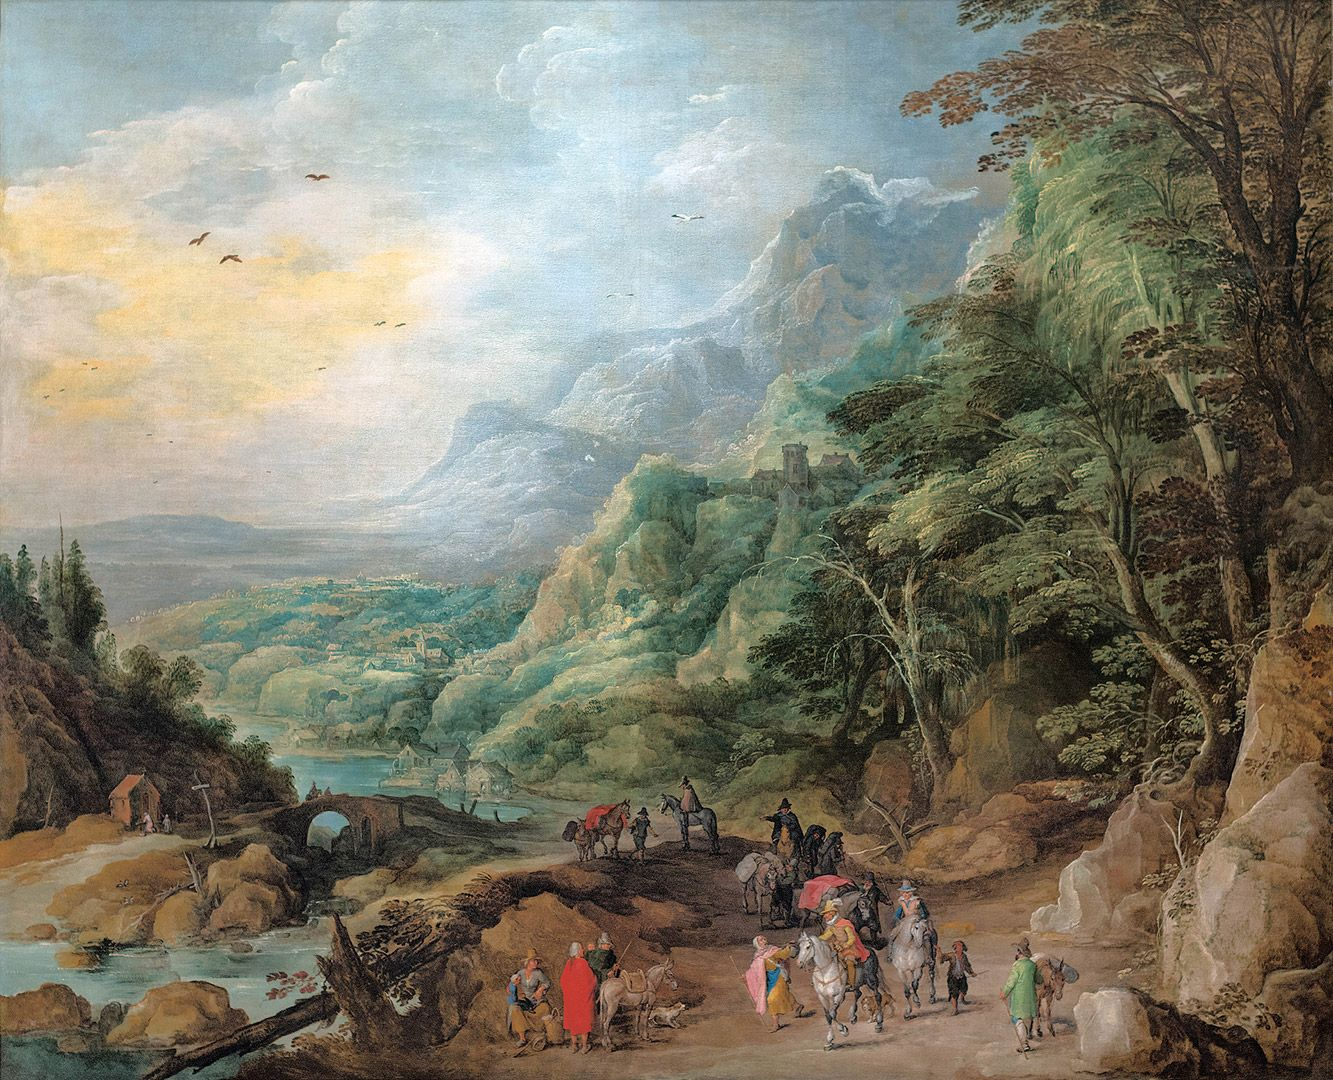 Le Jeune Momper et Le Vieux Bruegel, Wide Mountain Landscape with Travellers and Beggars, about 1620, oil on canvas, 181.8 x 219 cm. Gift of Mr. and Mrs. Michal Hornstein.